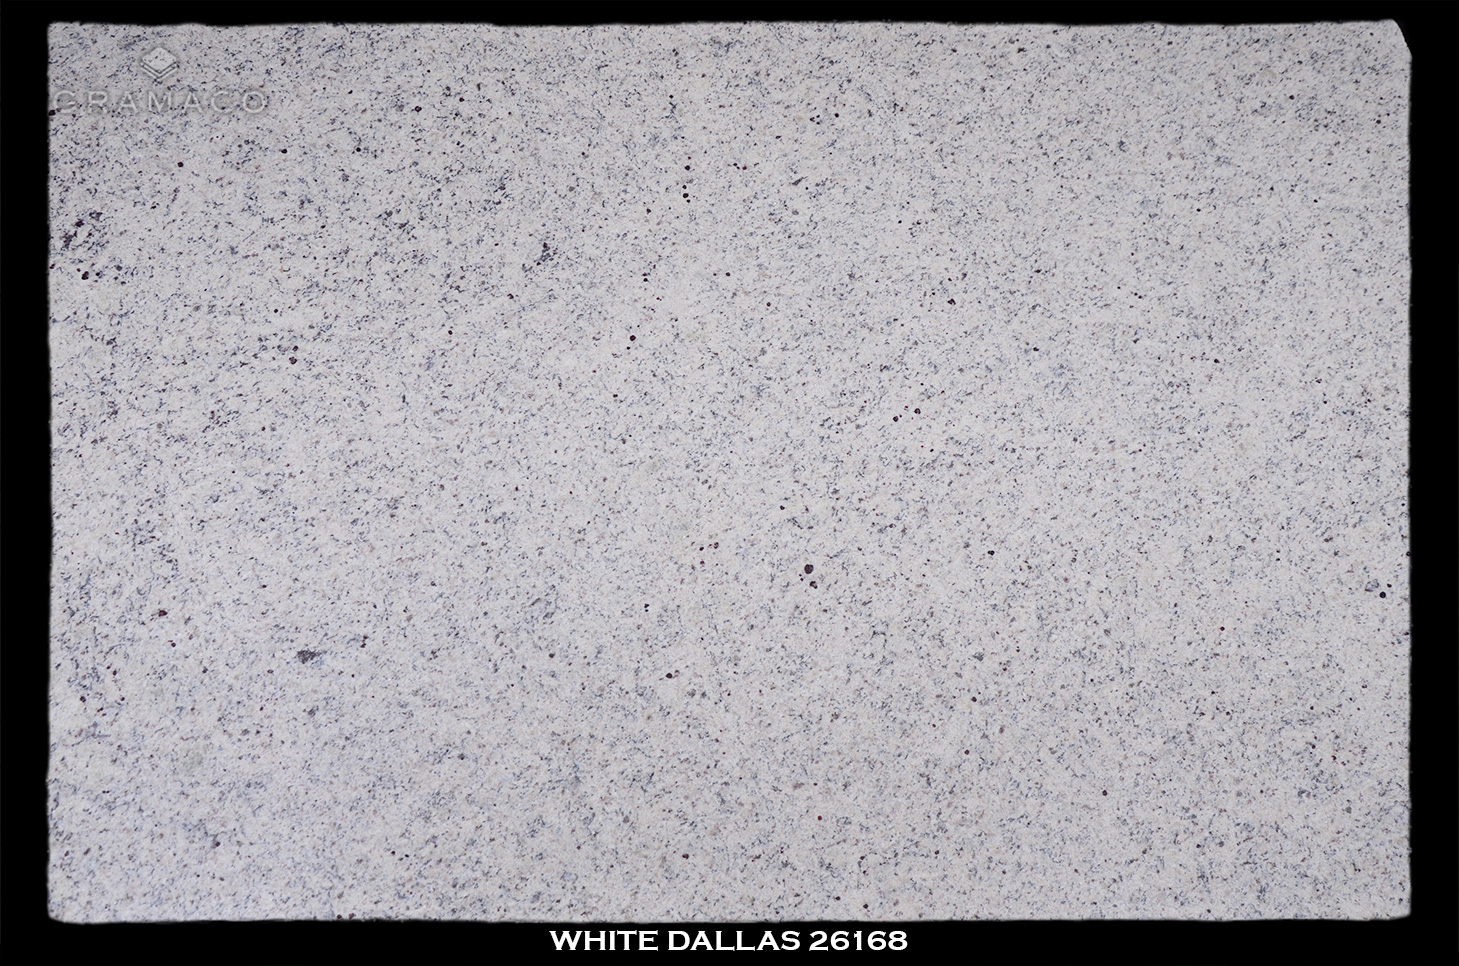 WHITE-DALLAS-26168